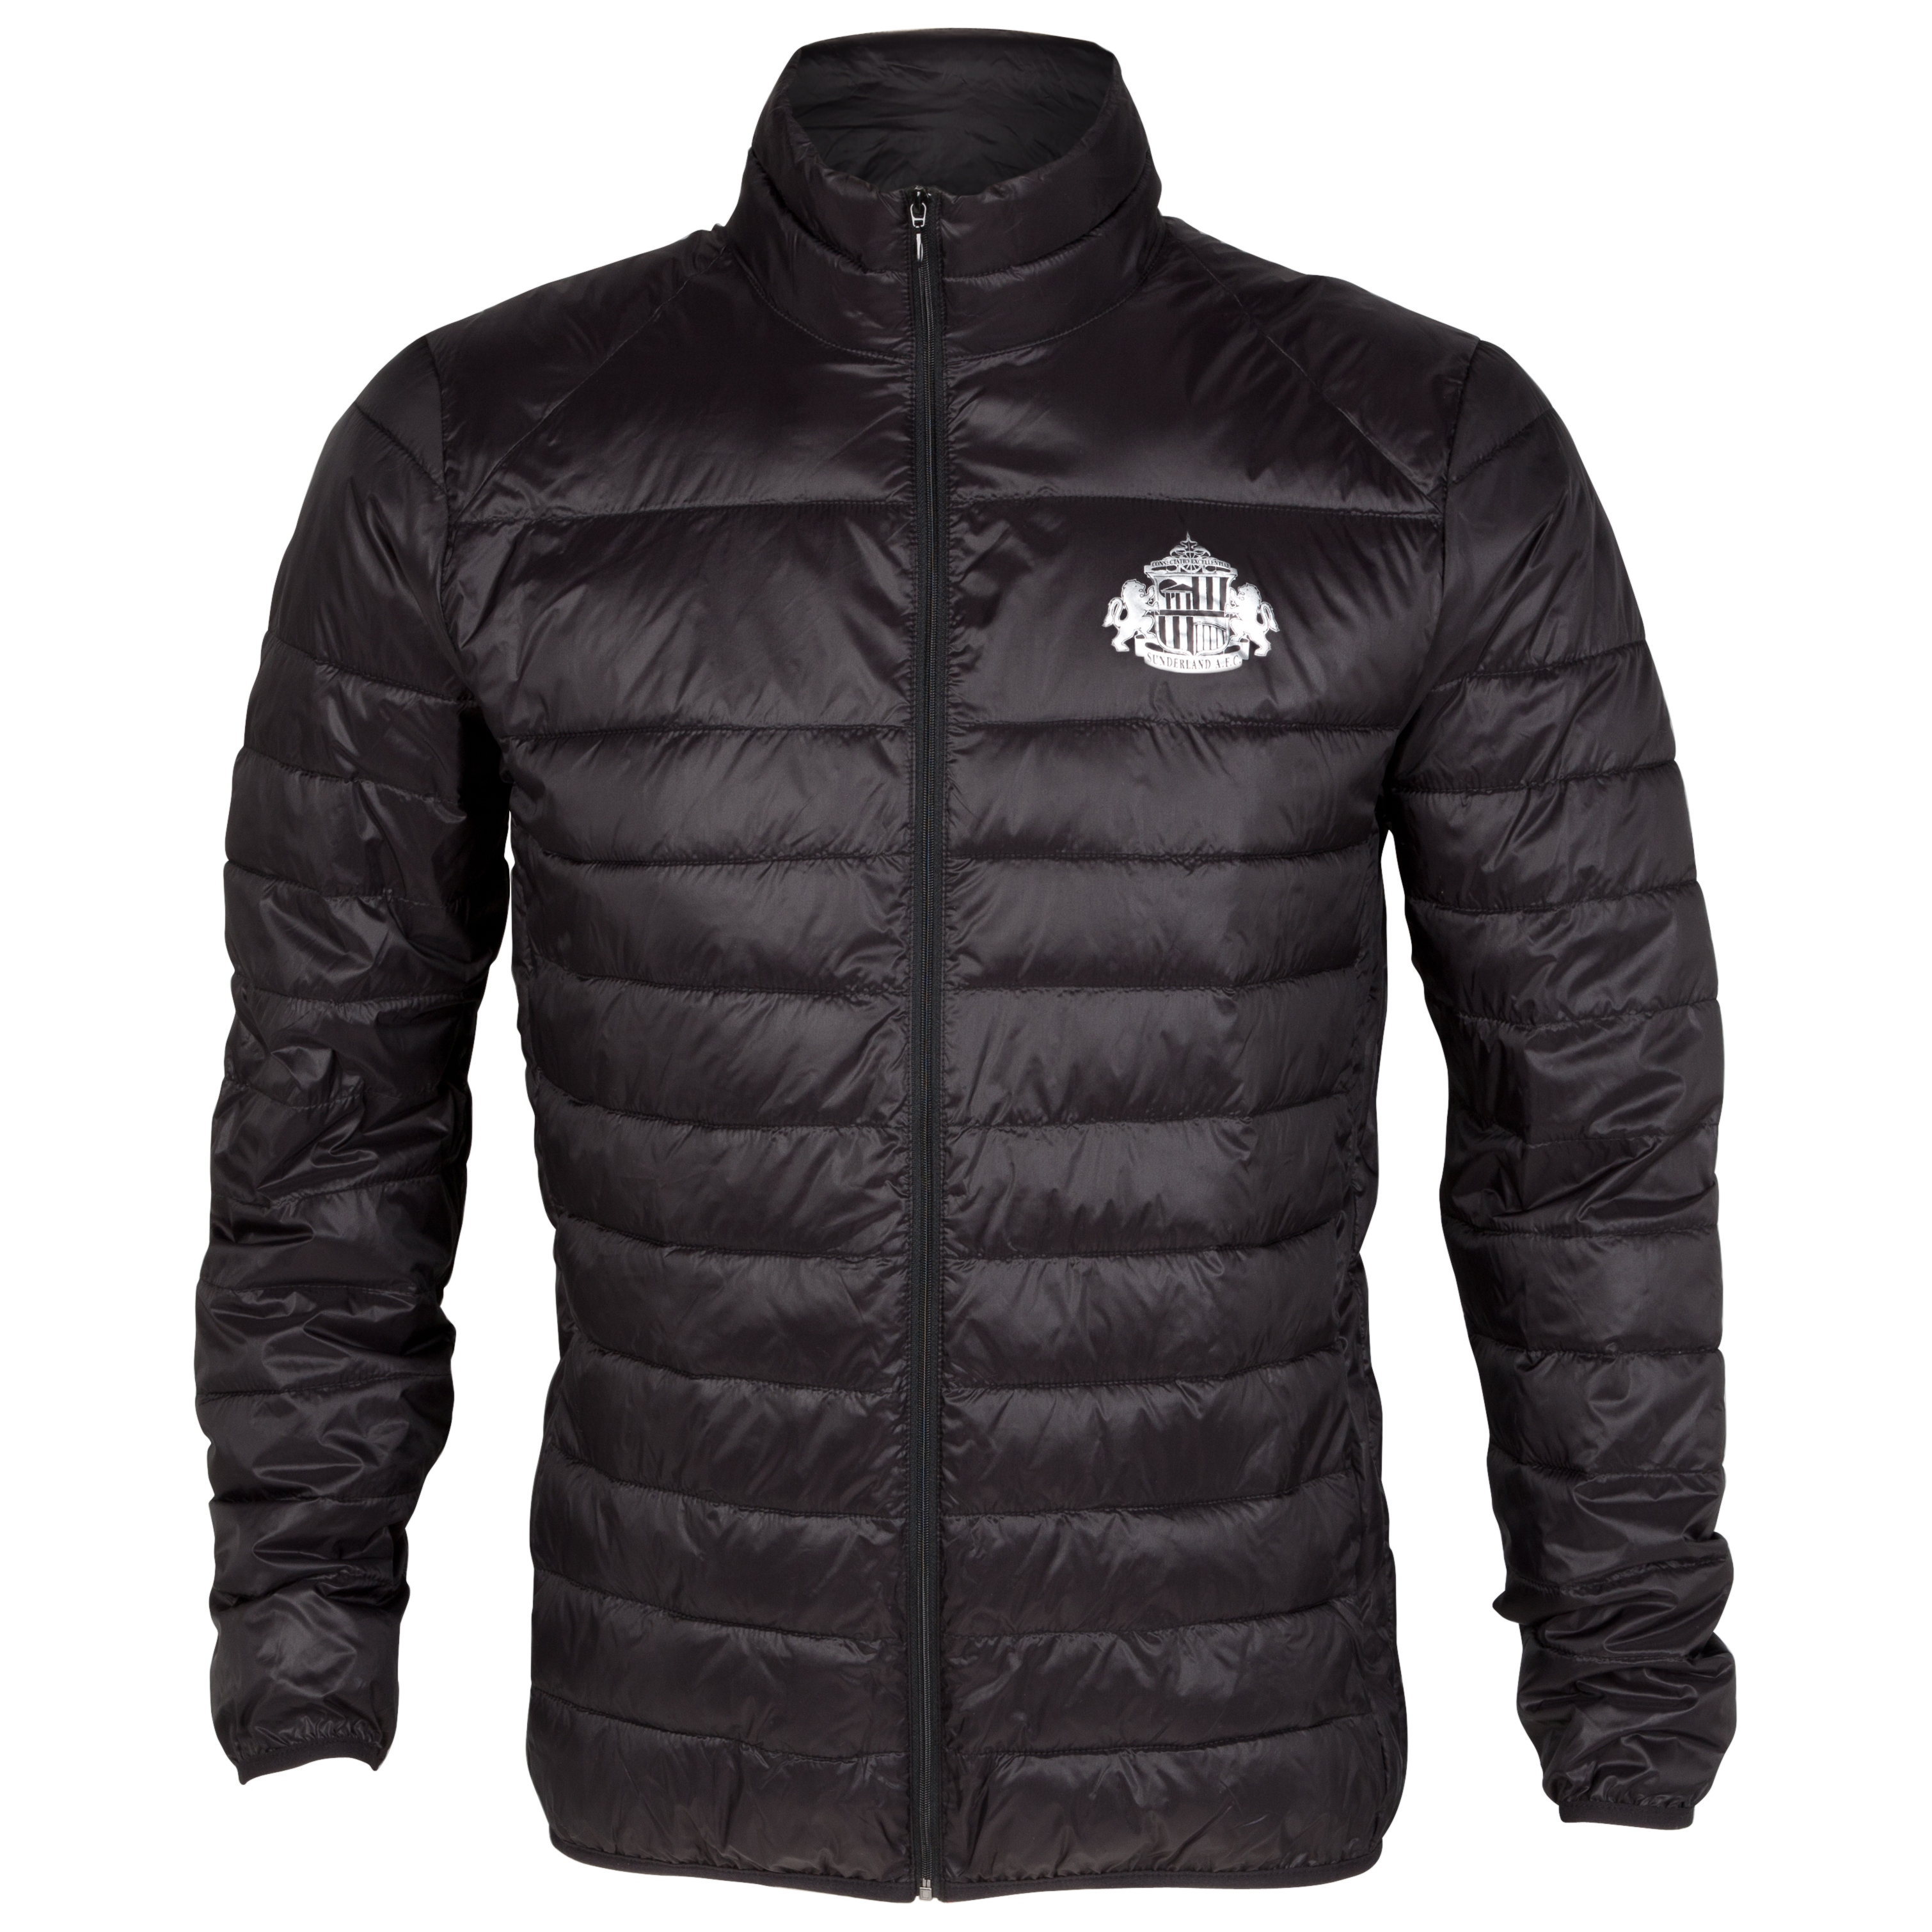 Sunderland Performance Glacier Jacket - Black - Older Boys